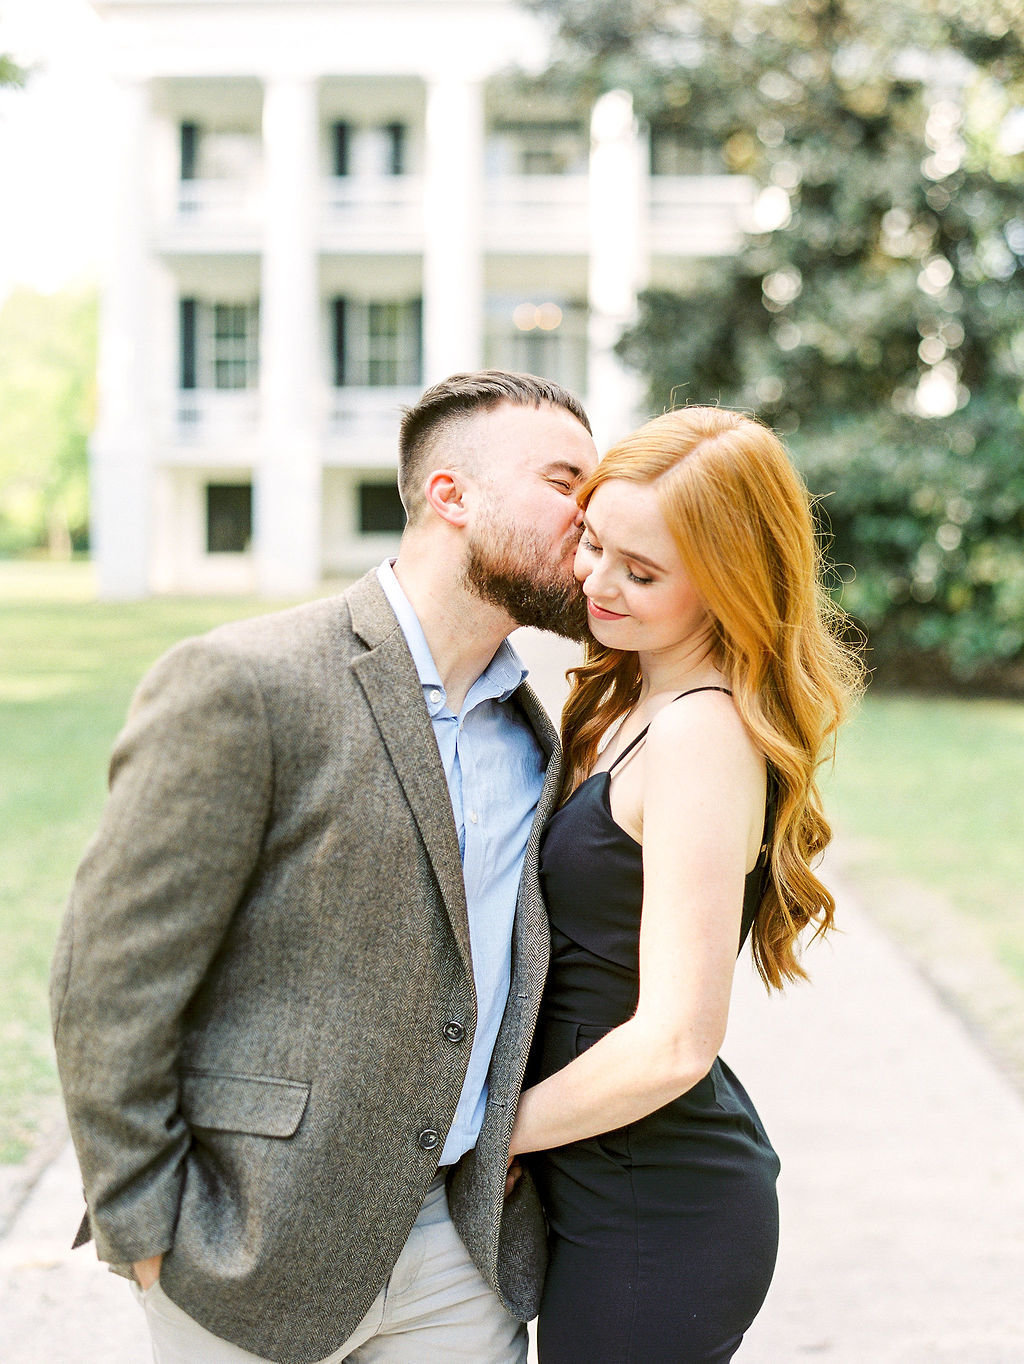 CourtneyPrice-Emma&RyanFilm-2